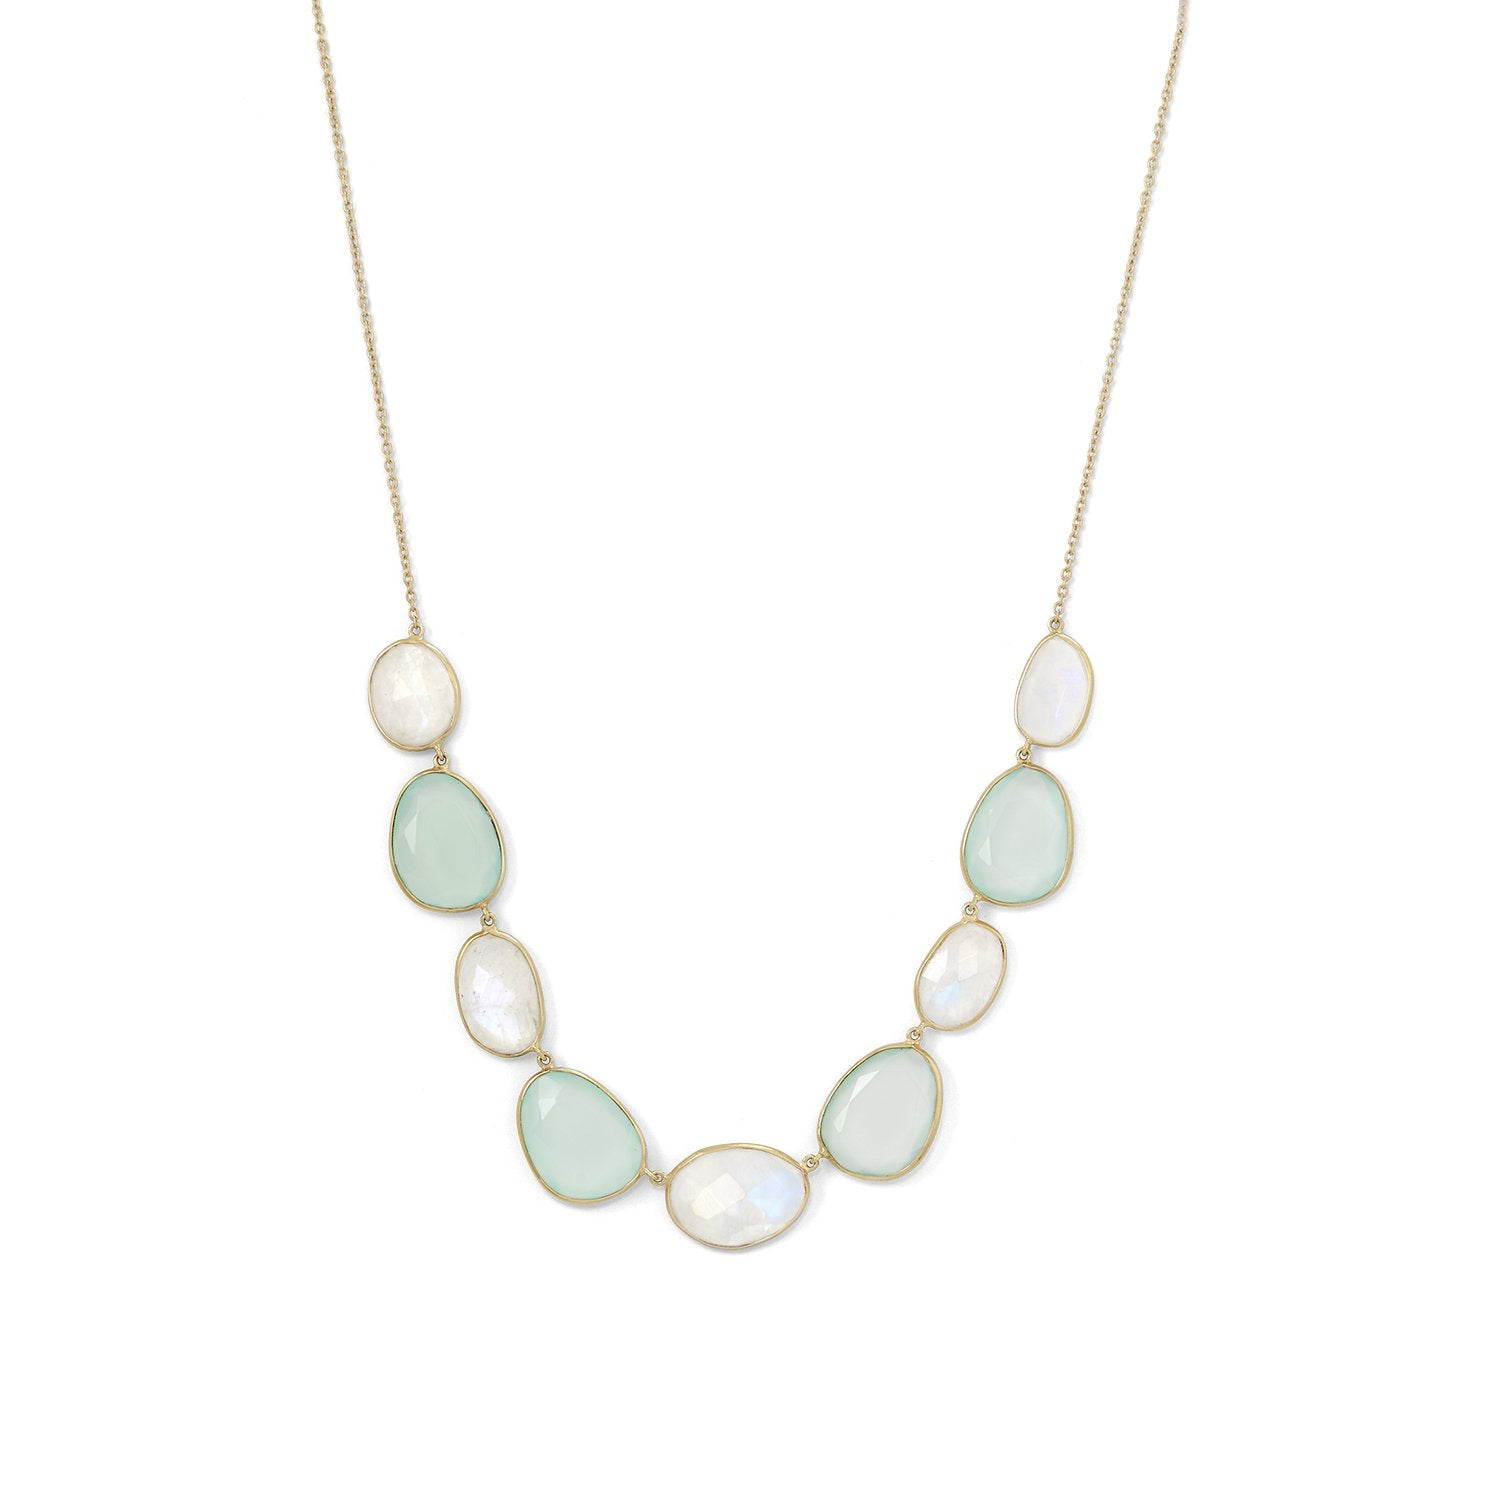 18k Gold Moonstone & Chalcedony Necklace